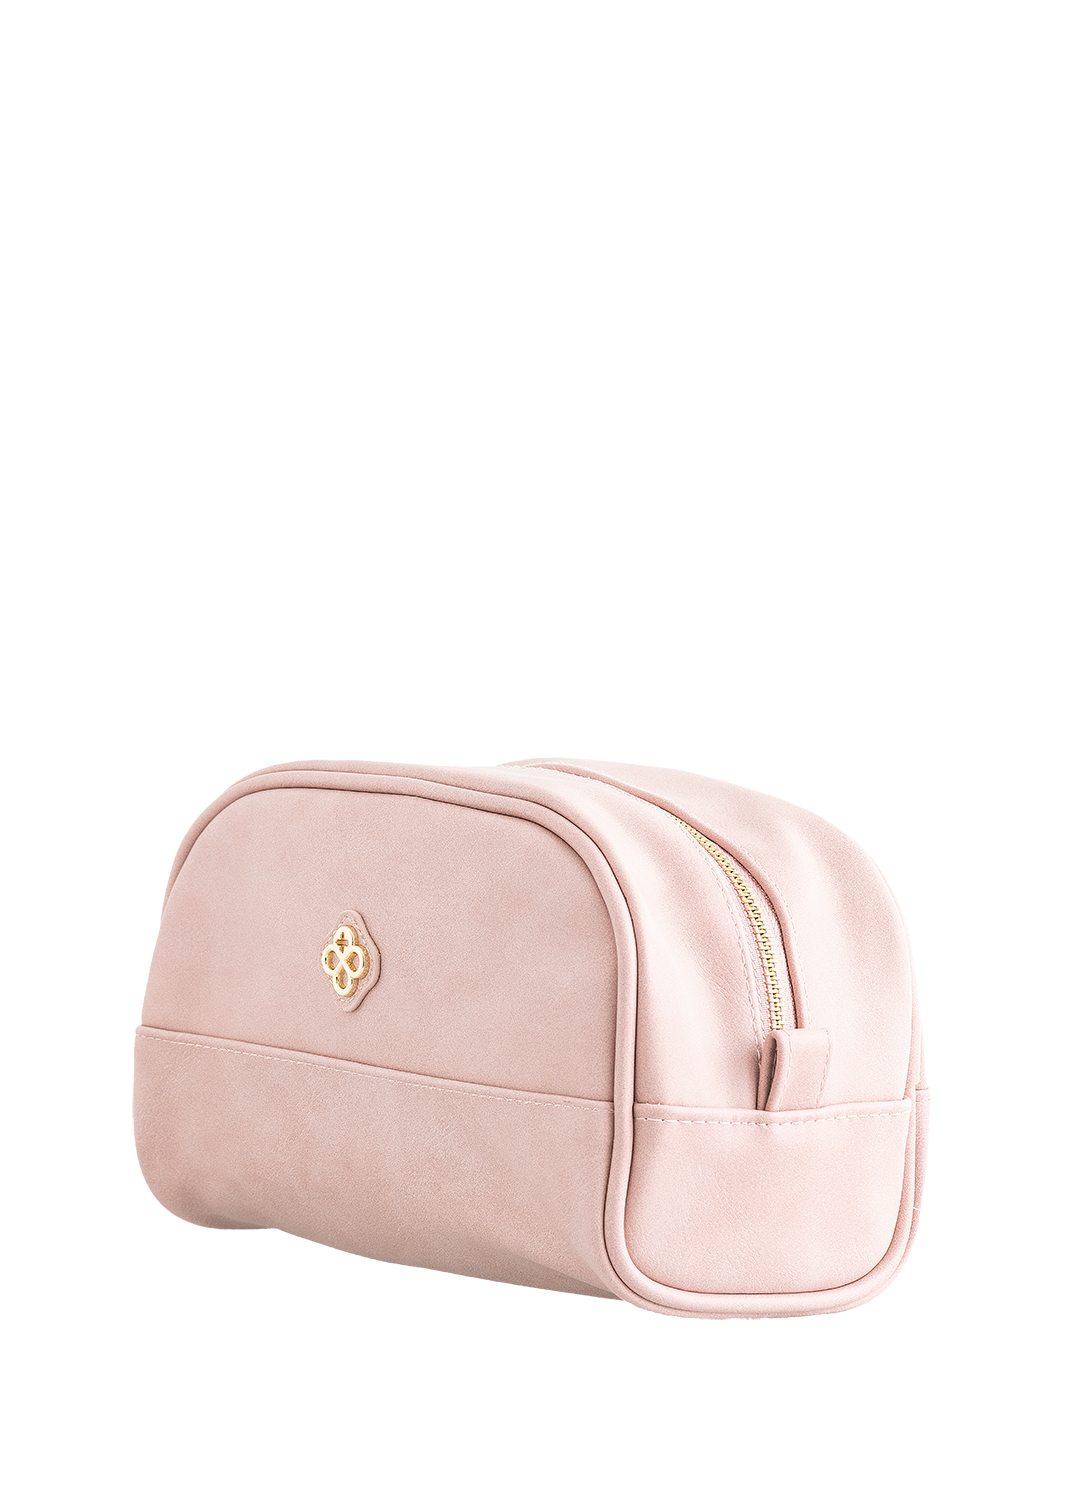 JI 004 BLUSH B - PNG copia